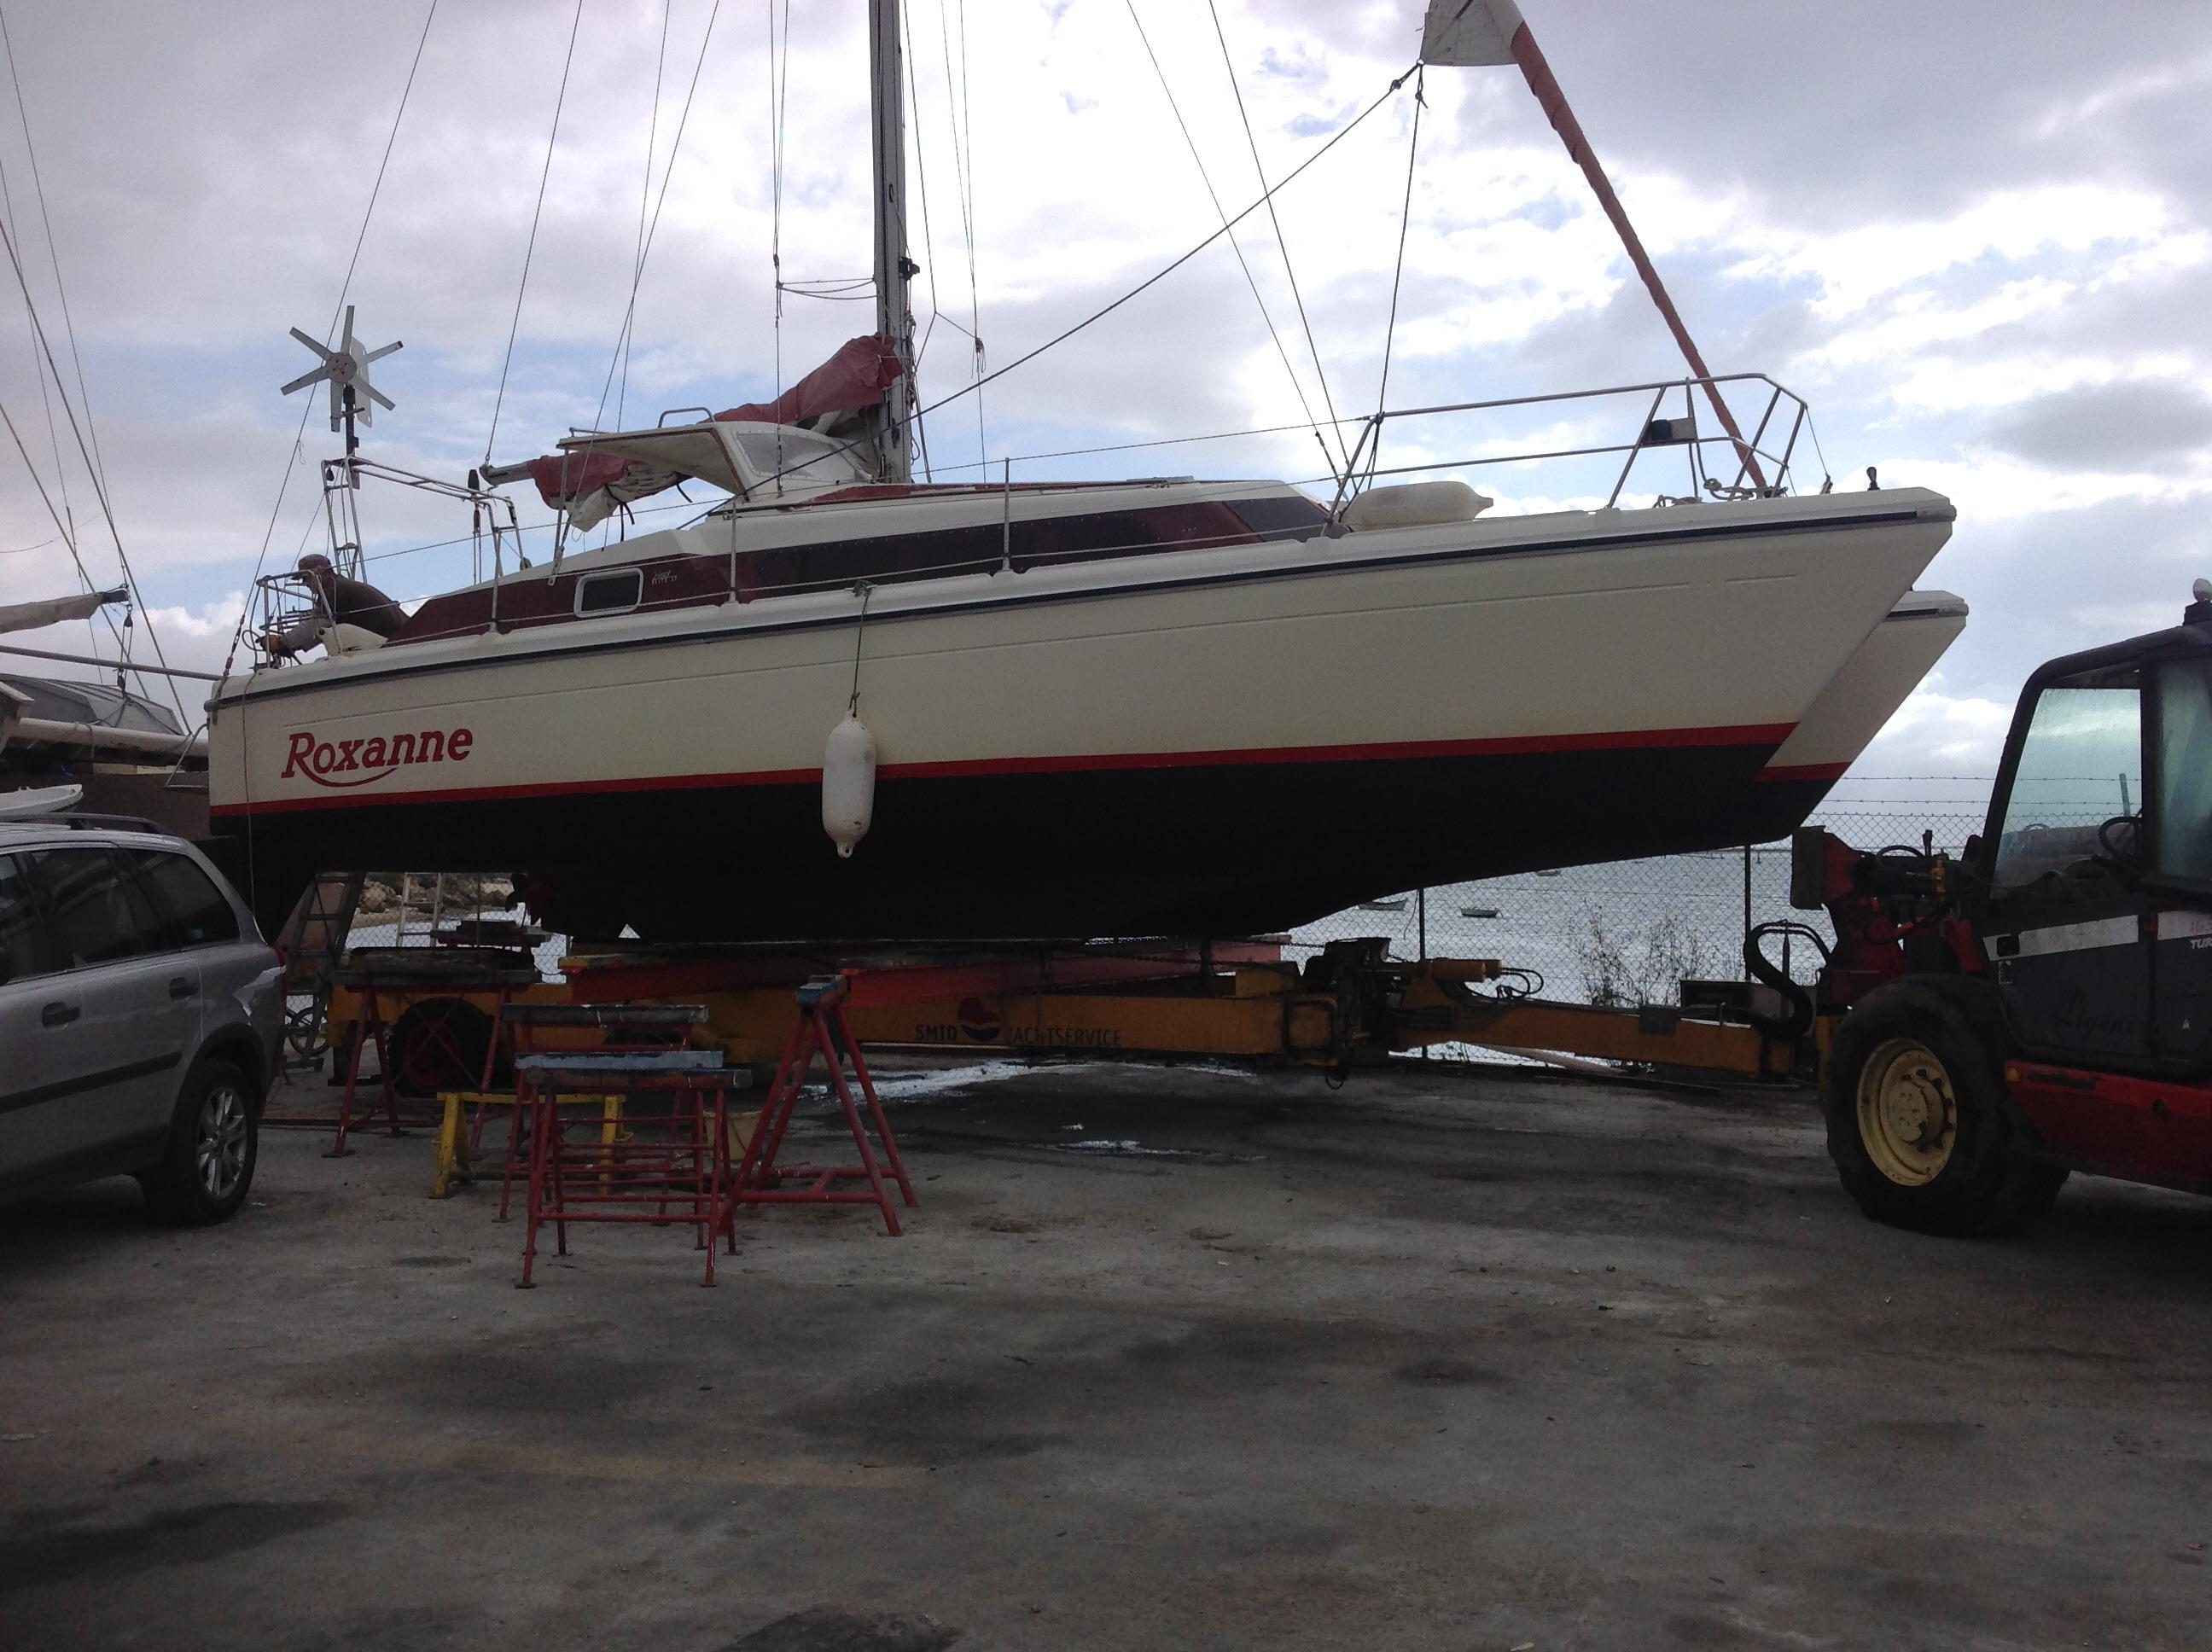 Boats For Sale In Tn >> 1988 Prout Catamarans SNOWGOOSE 37 Elite Sail Boat For Sale - www.yachtworld.com